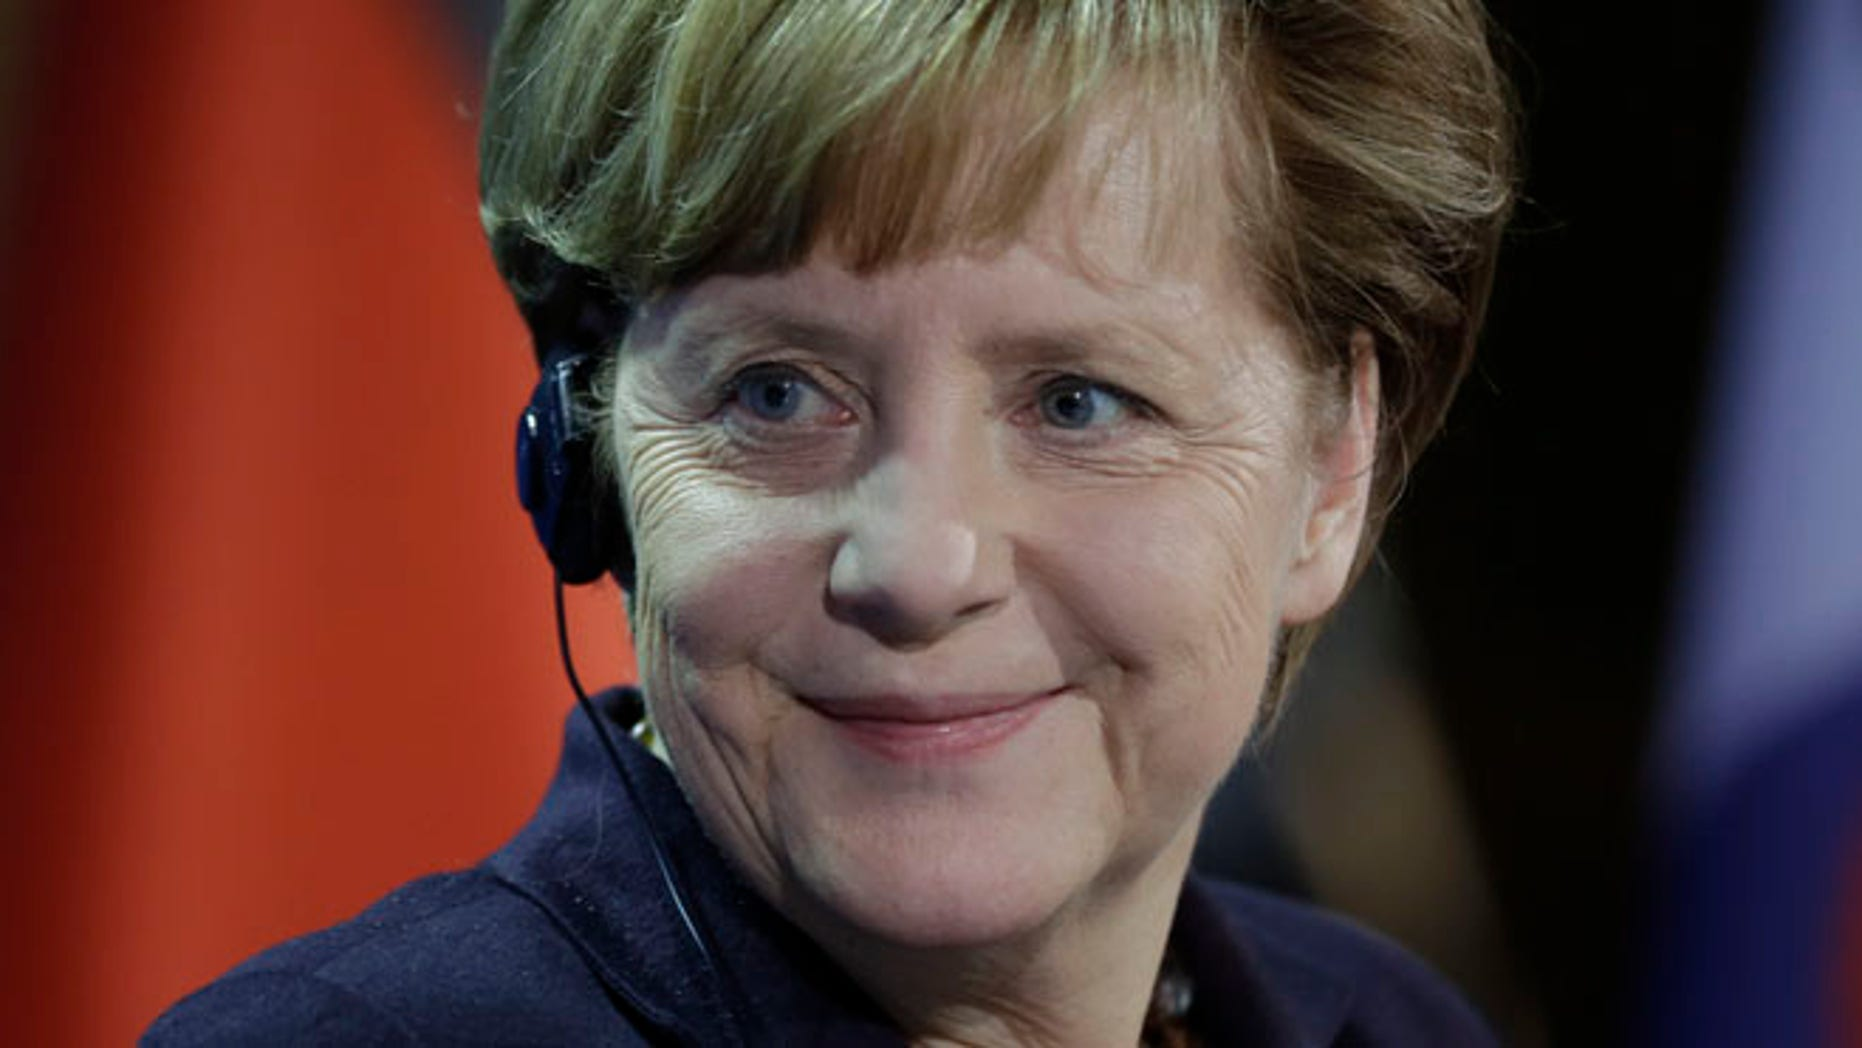 MARCH 26: German Chancellor Angela Merkel seen in South Korea has reportedly been a target for NSA.